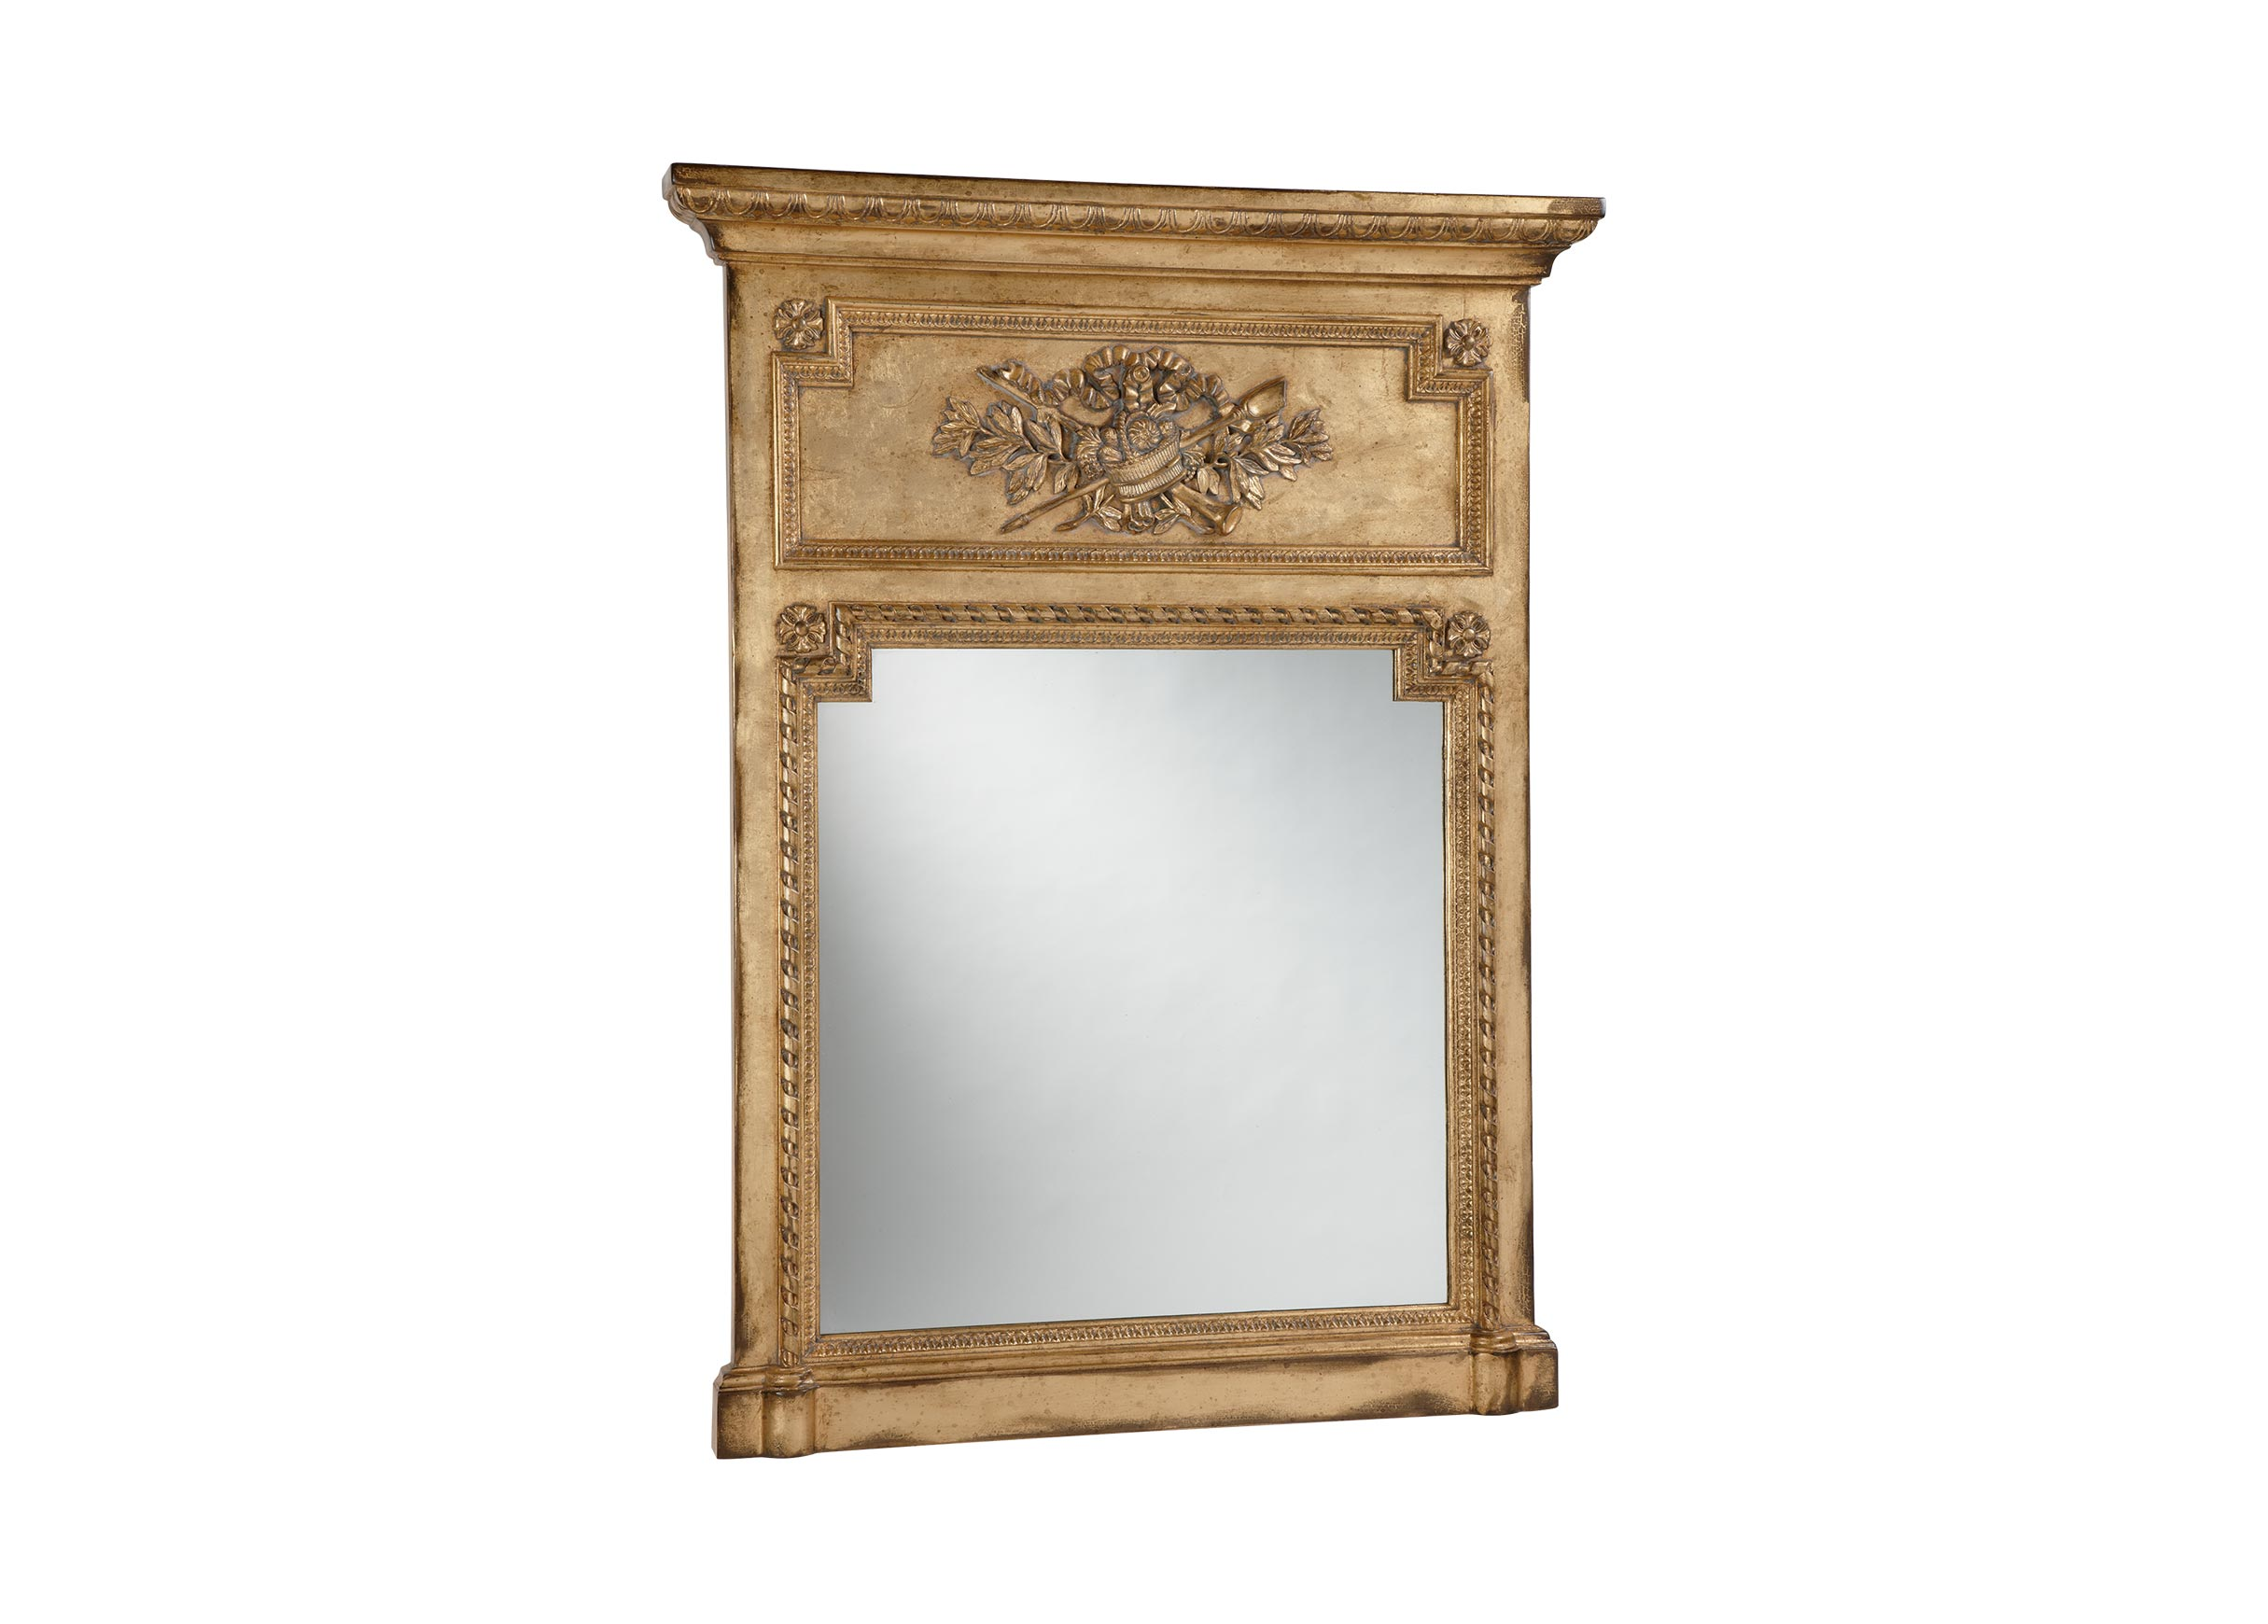 Antique gold madeleine trumeau wall mirror mirrors for Gold wall mirror